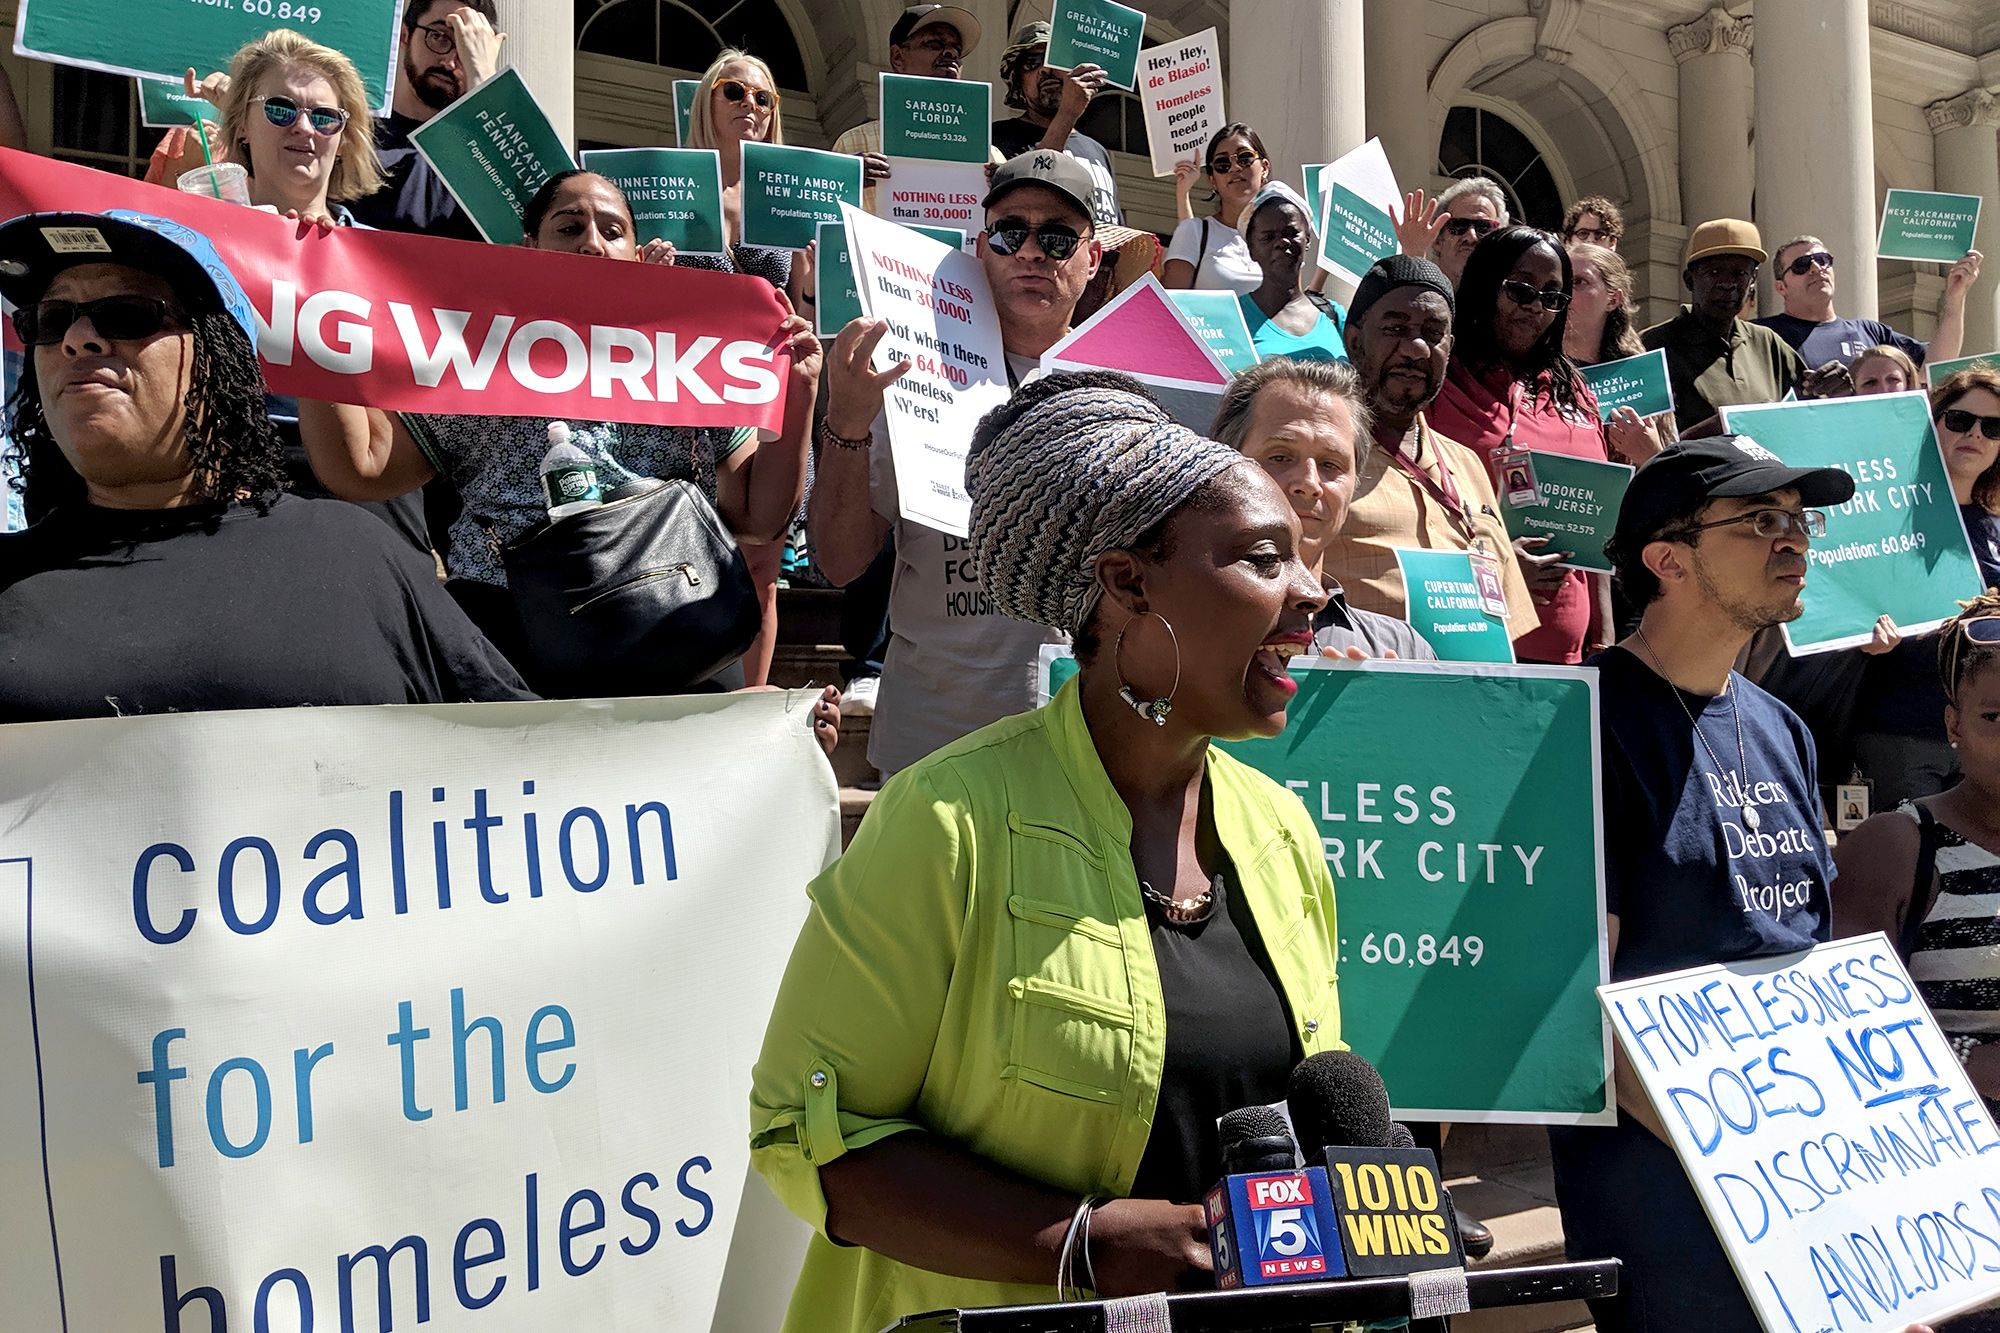 Homeless advocate Came'e Lee and her son are searching for permanent housing after being legally evicted from their Queens home. She spoke at a rally in front of City Hall on Aug. 20, 2019.